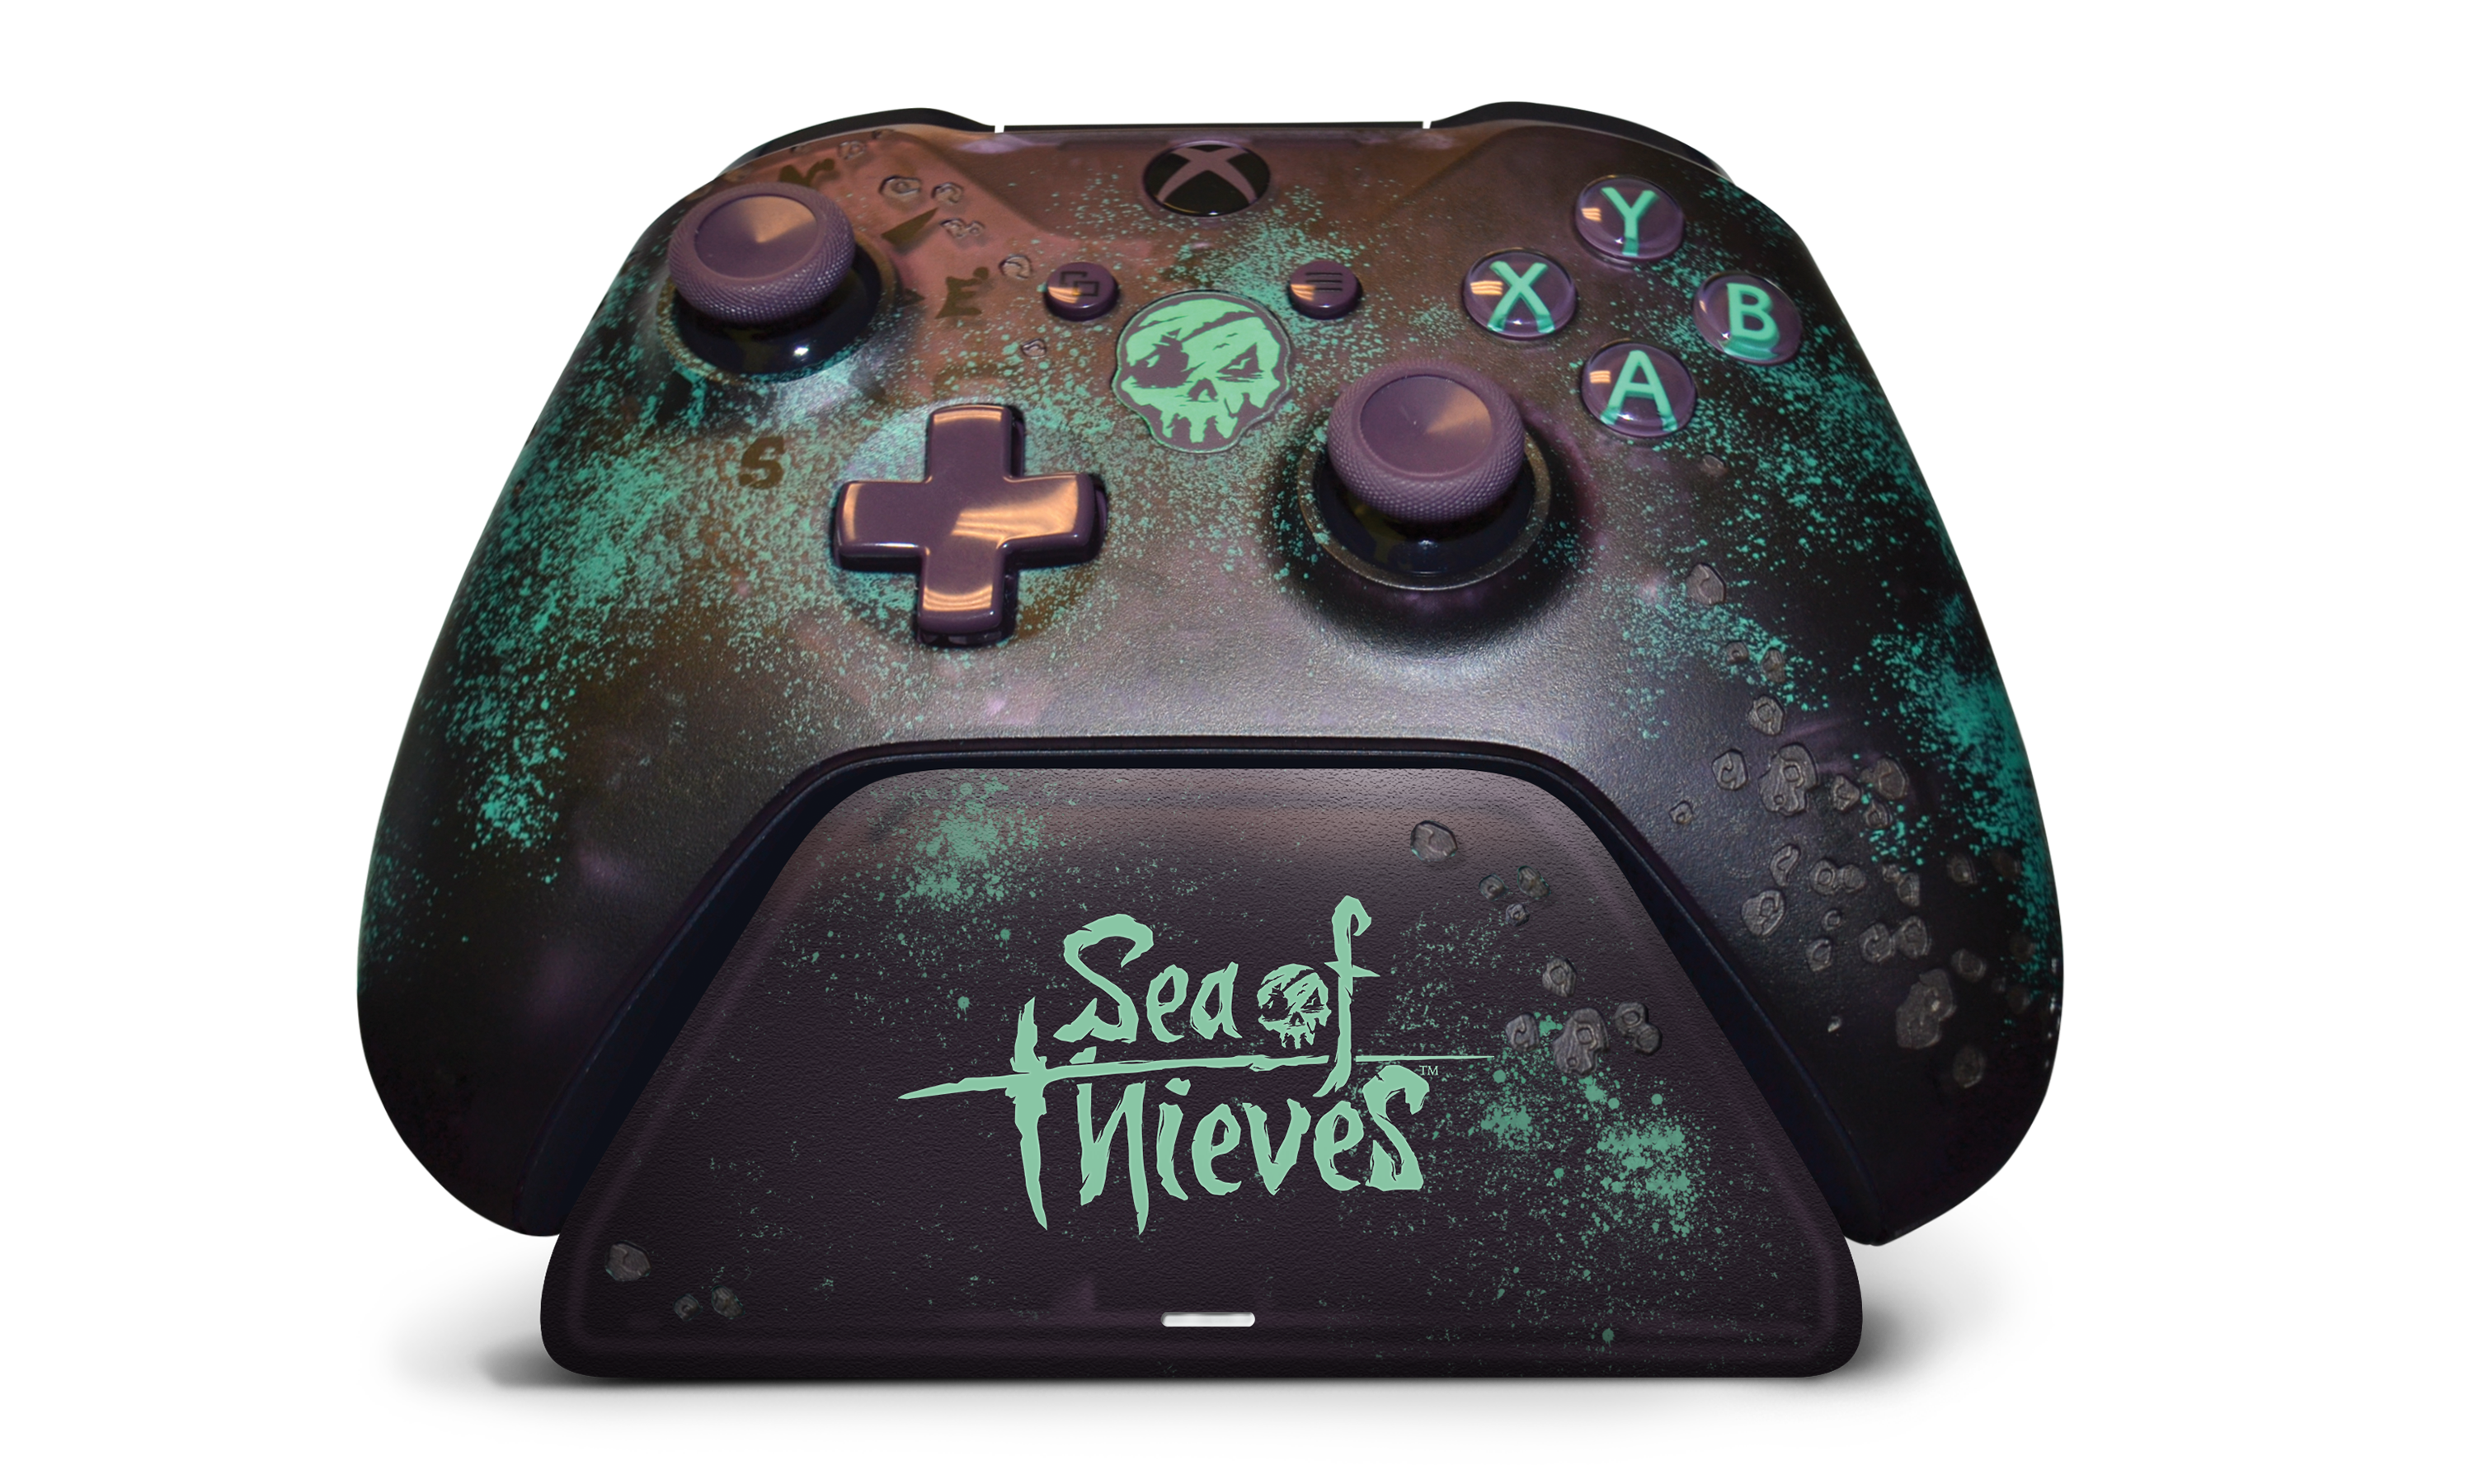 Sea of Thieves Limited Edition Xbox Pro Charging Stand with controller